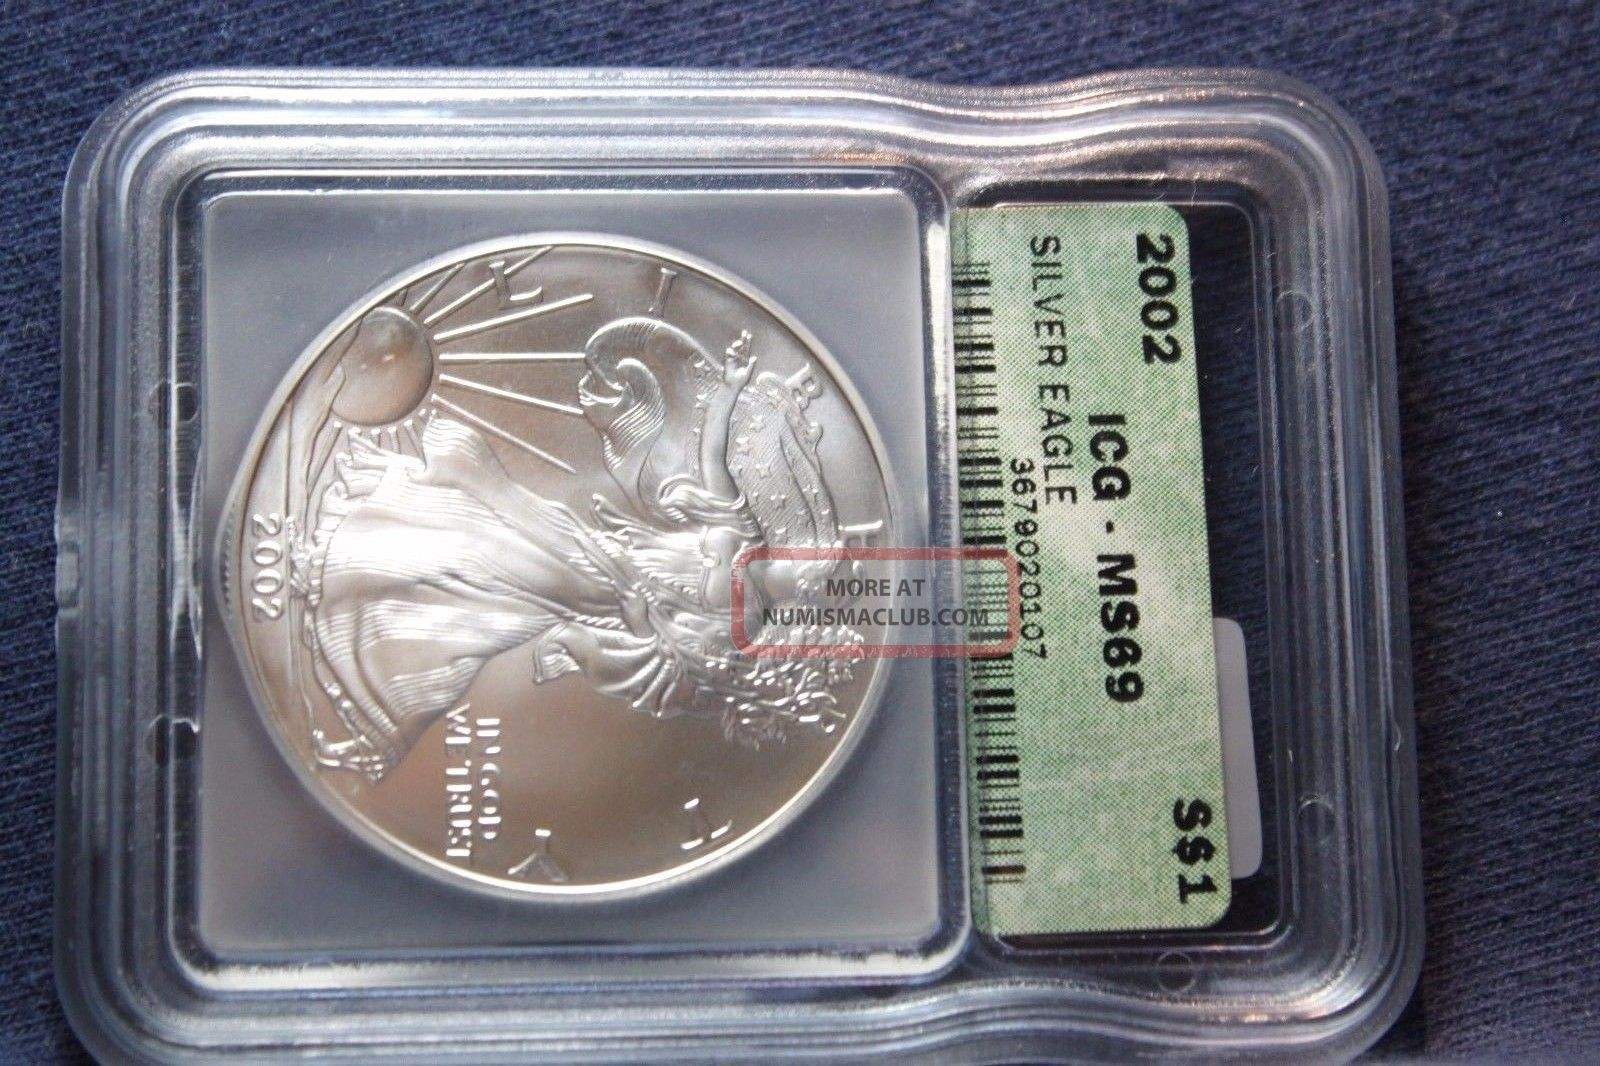 2002 Silver American Eagle Ms 69 Icg Coins photo